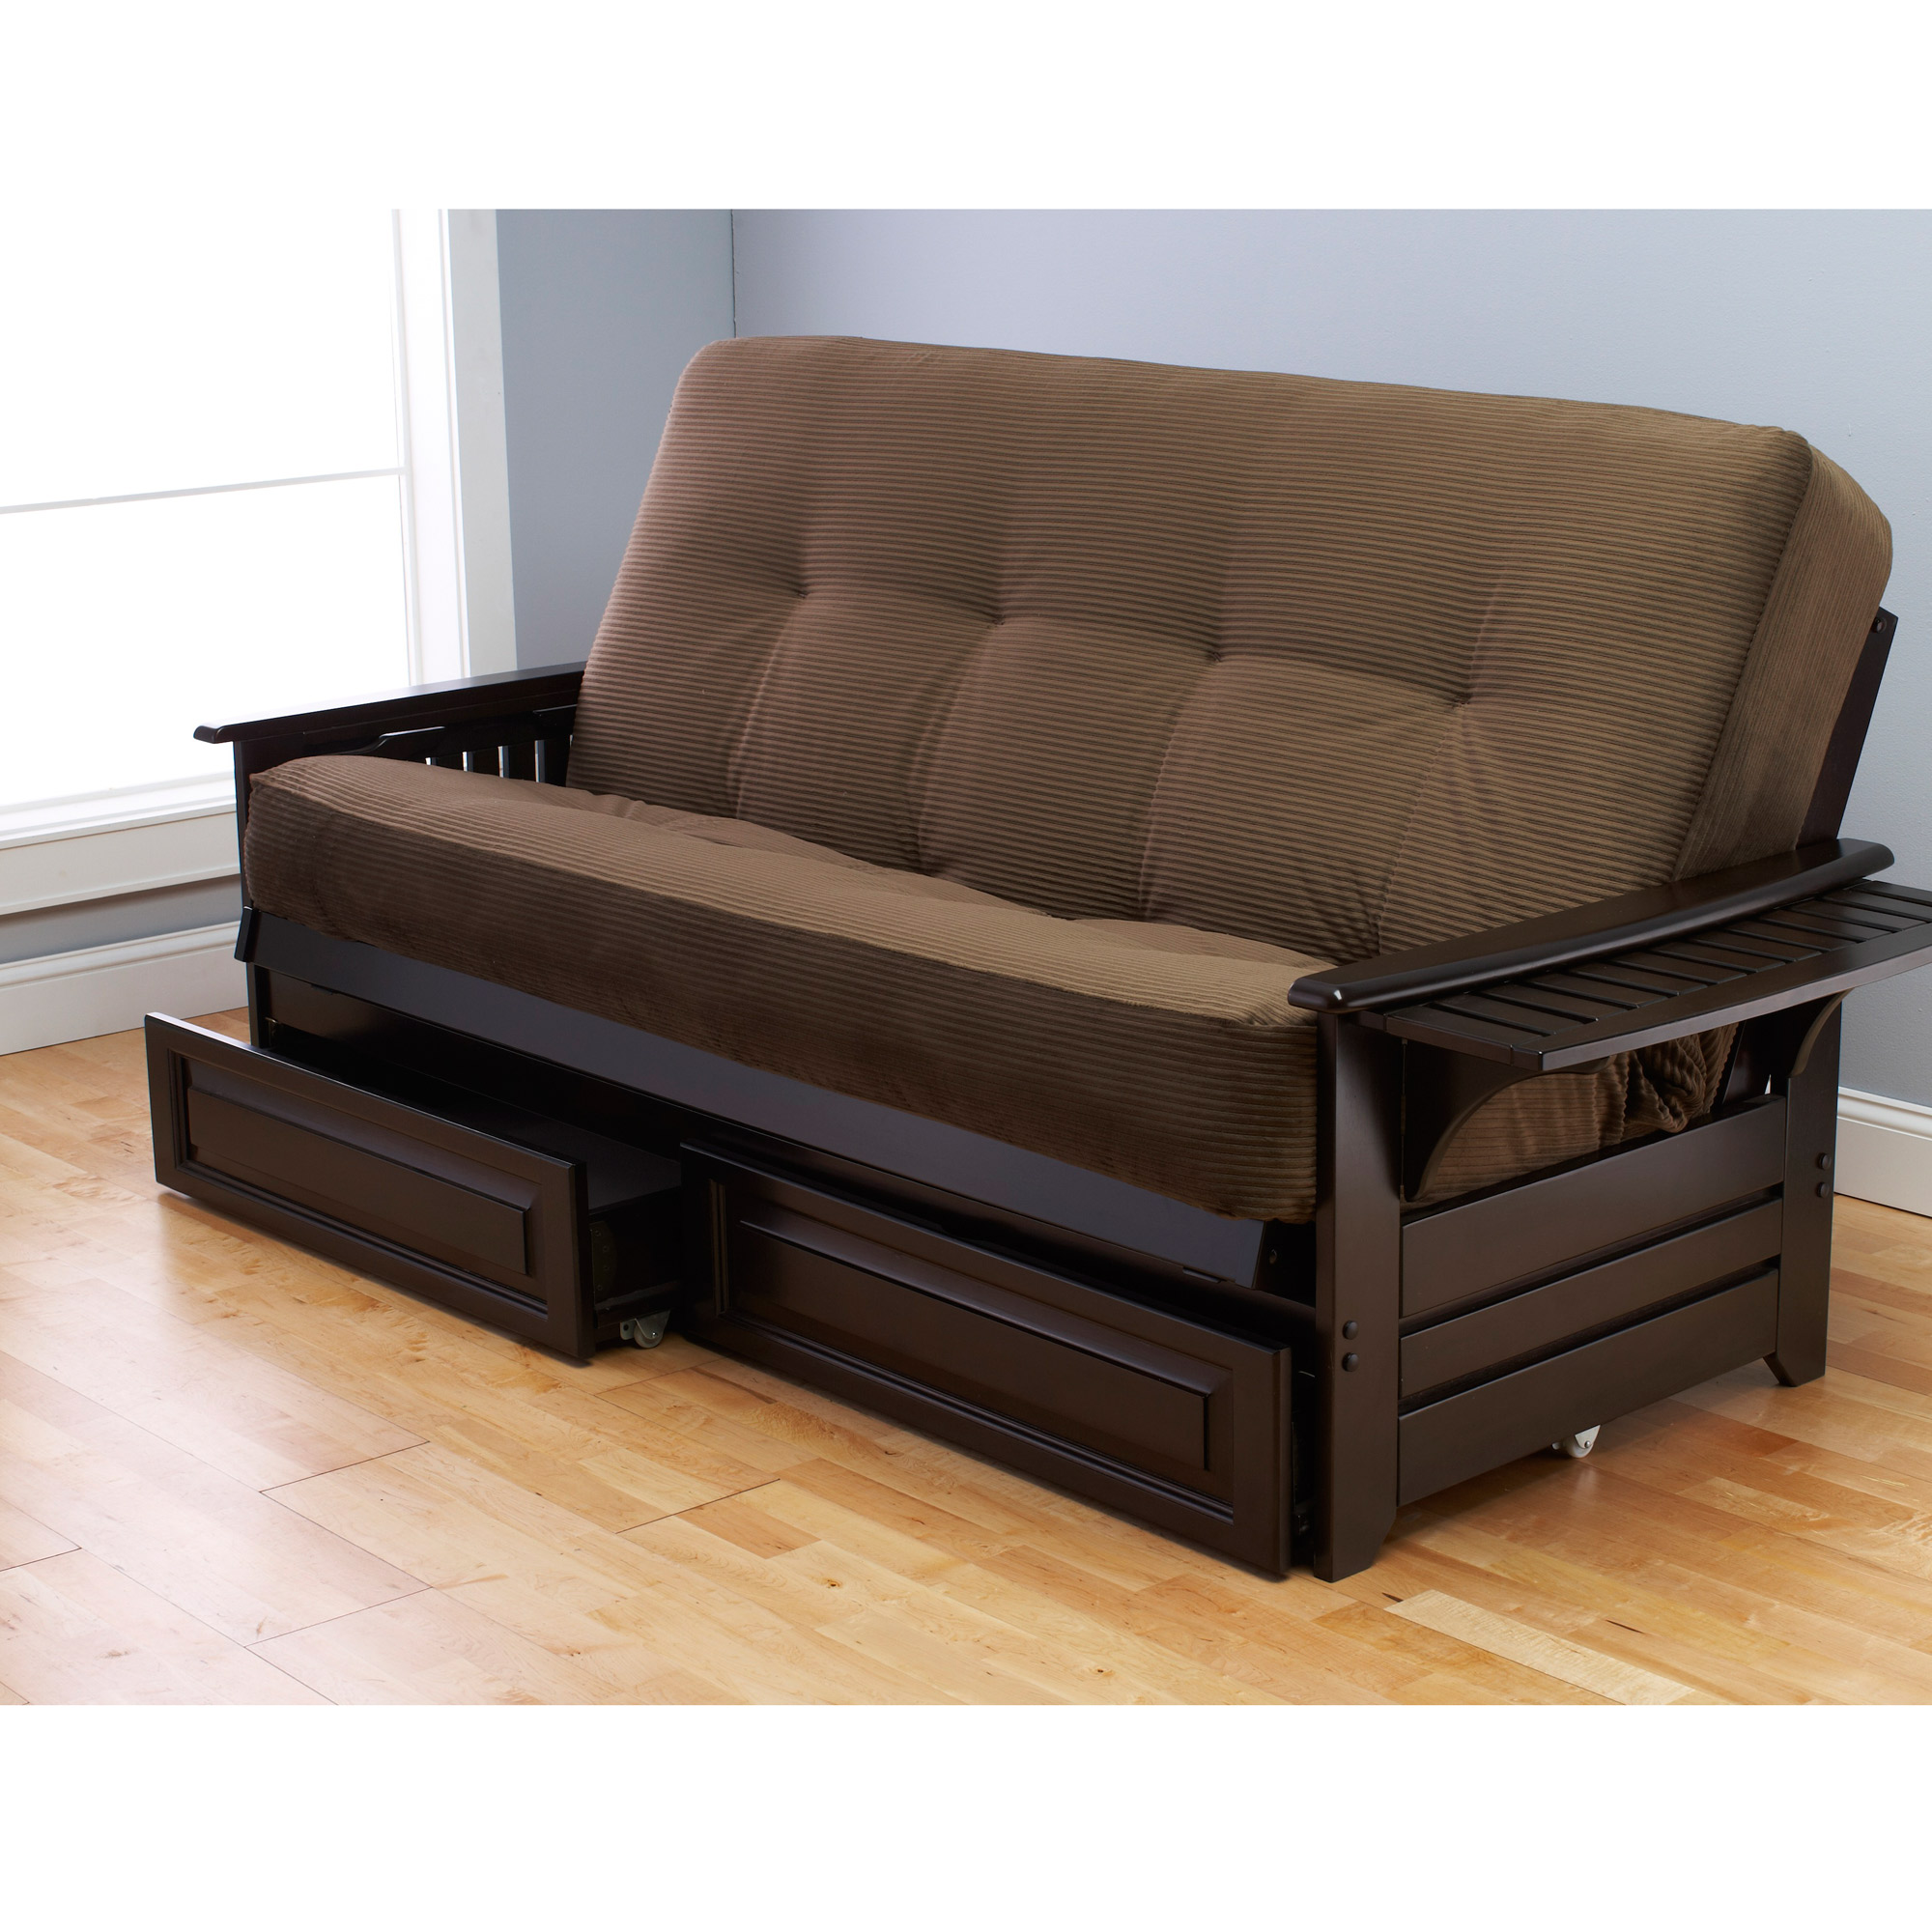 cheap futons in brown with storage on bottom for home furniture ideas